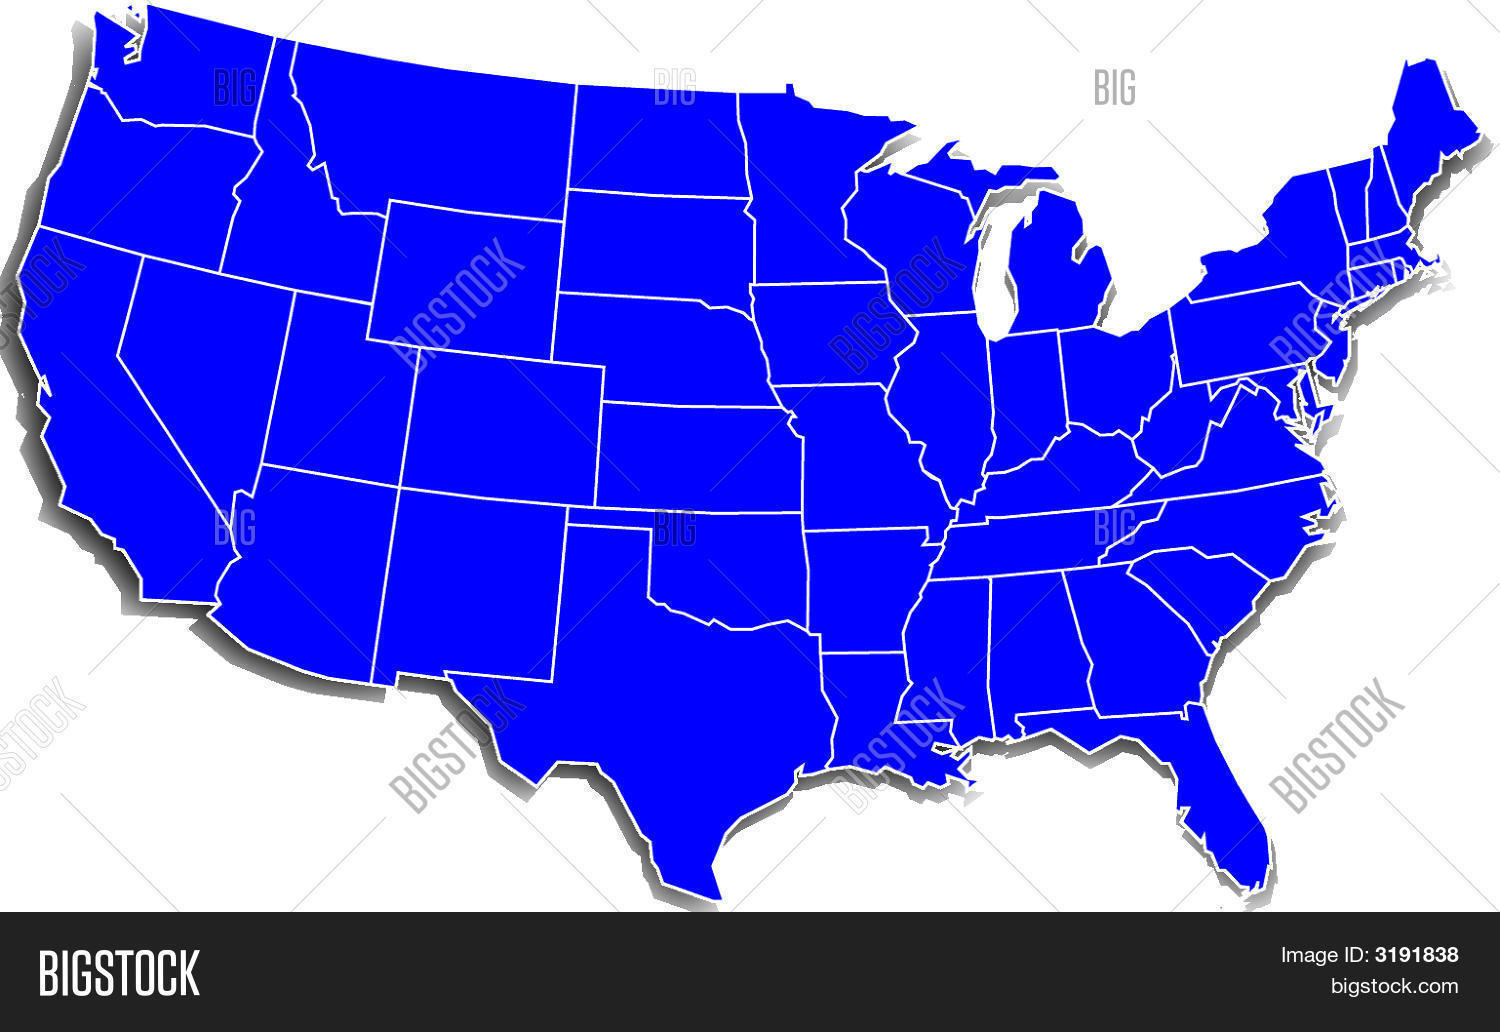 Simple U S Map Image Photo Free Trial Bigstock